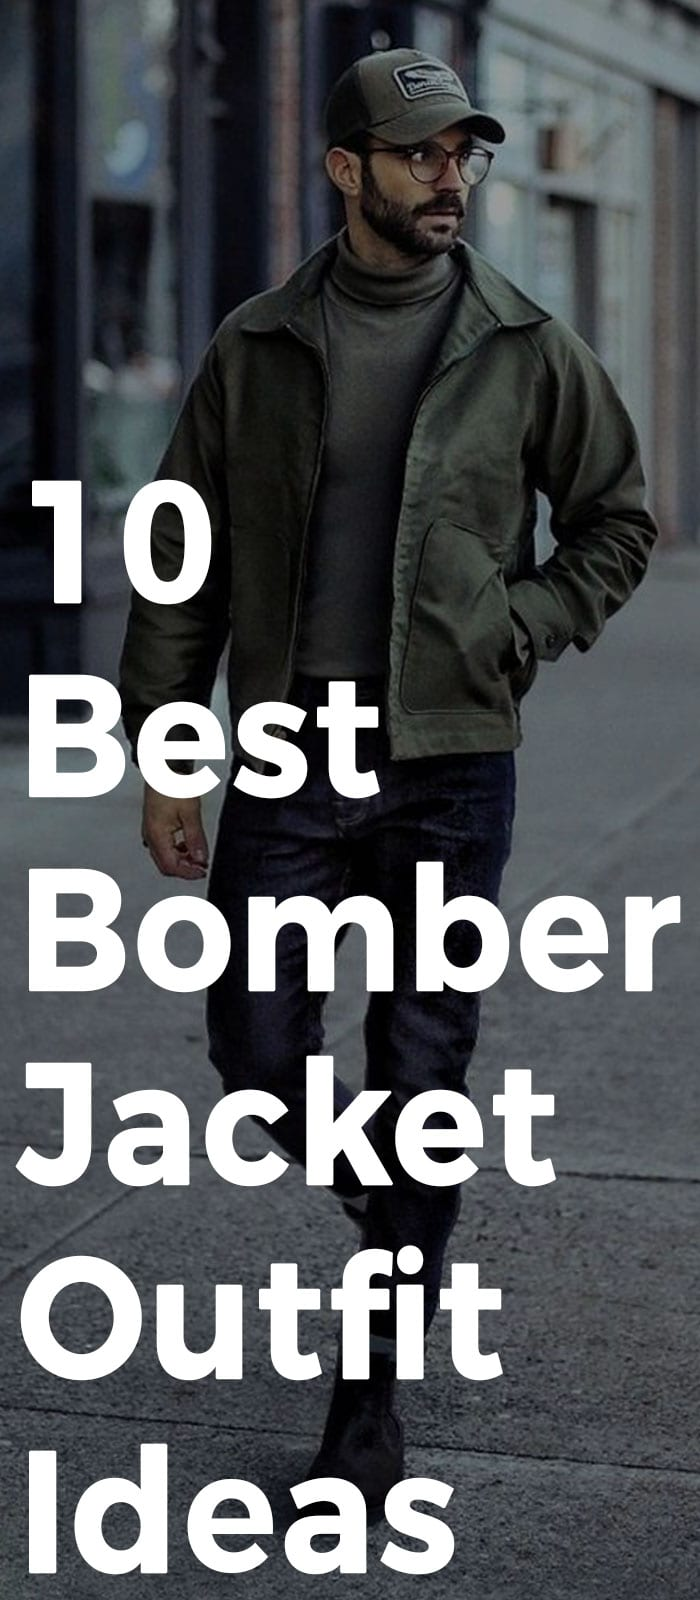 10 Best Bomber Jacket Outfit Ideas!